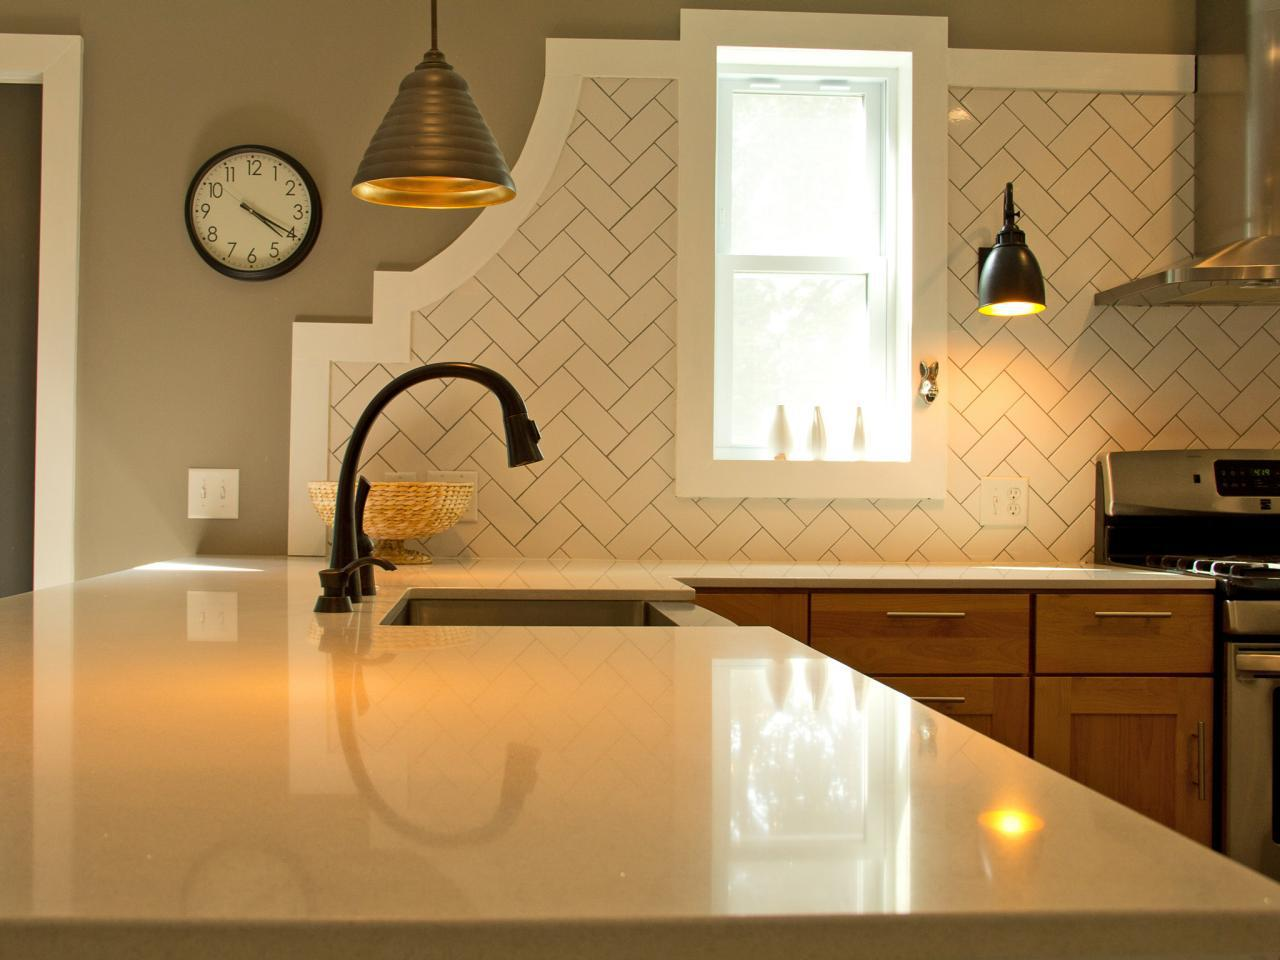 Image of: herringbone pattern backsplash tile